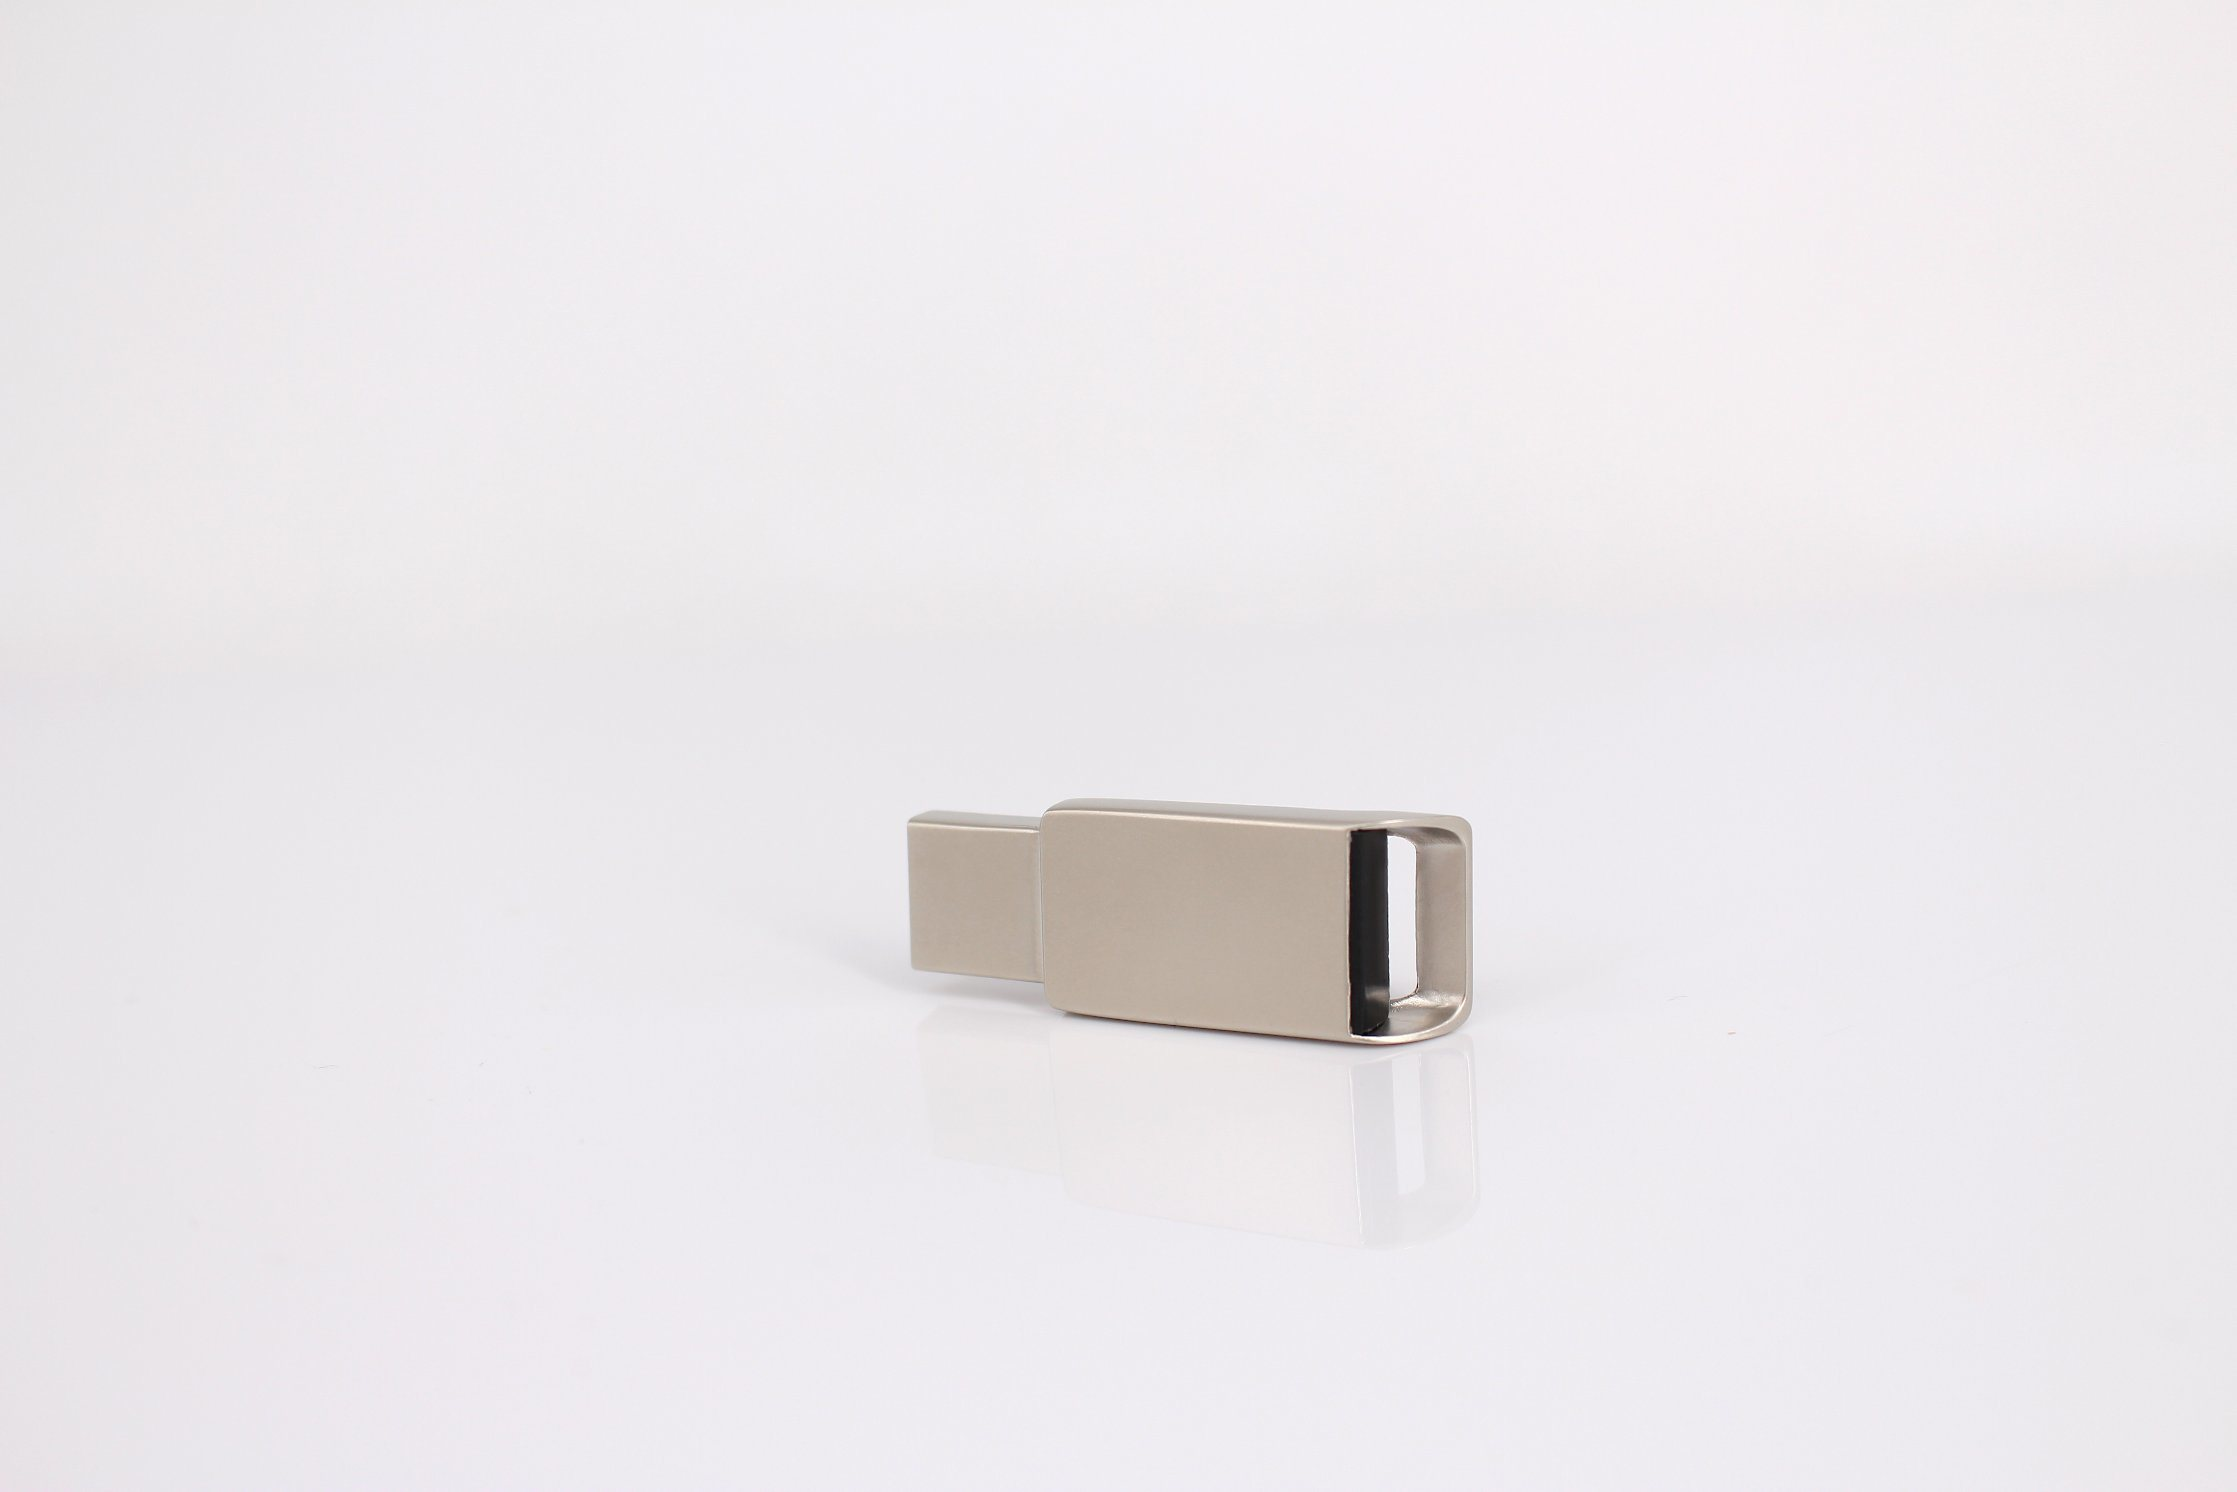 New Hight Speed USB Flash Drive pictures & photos